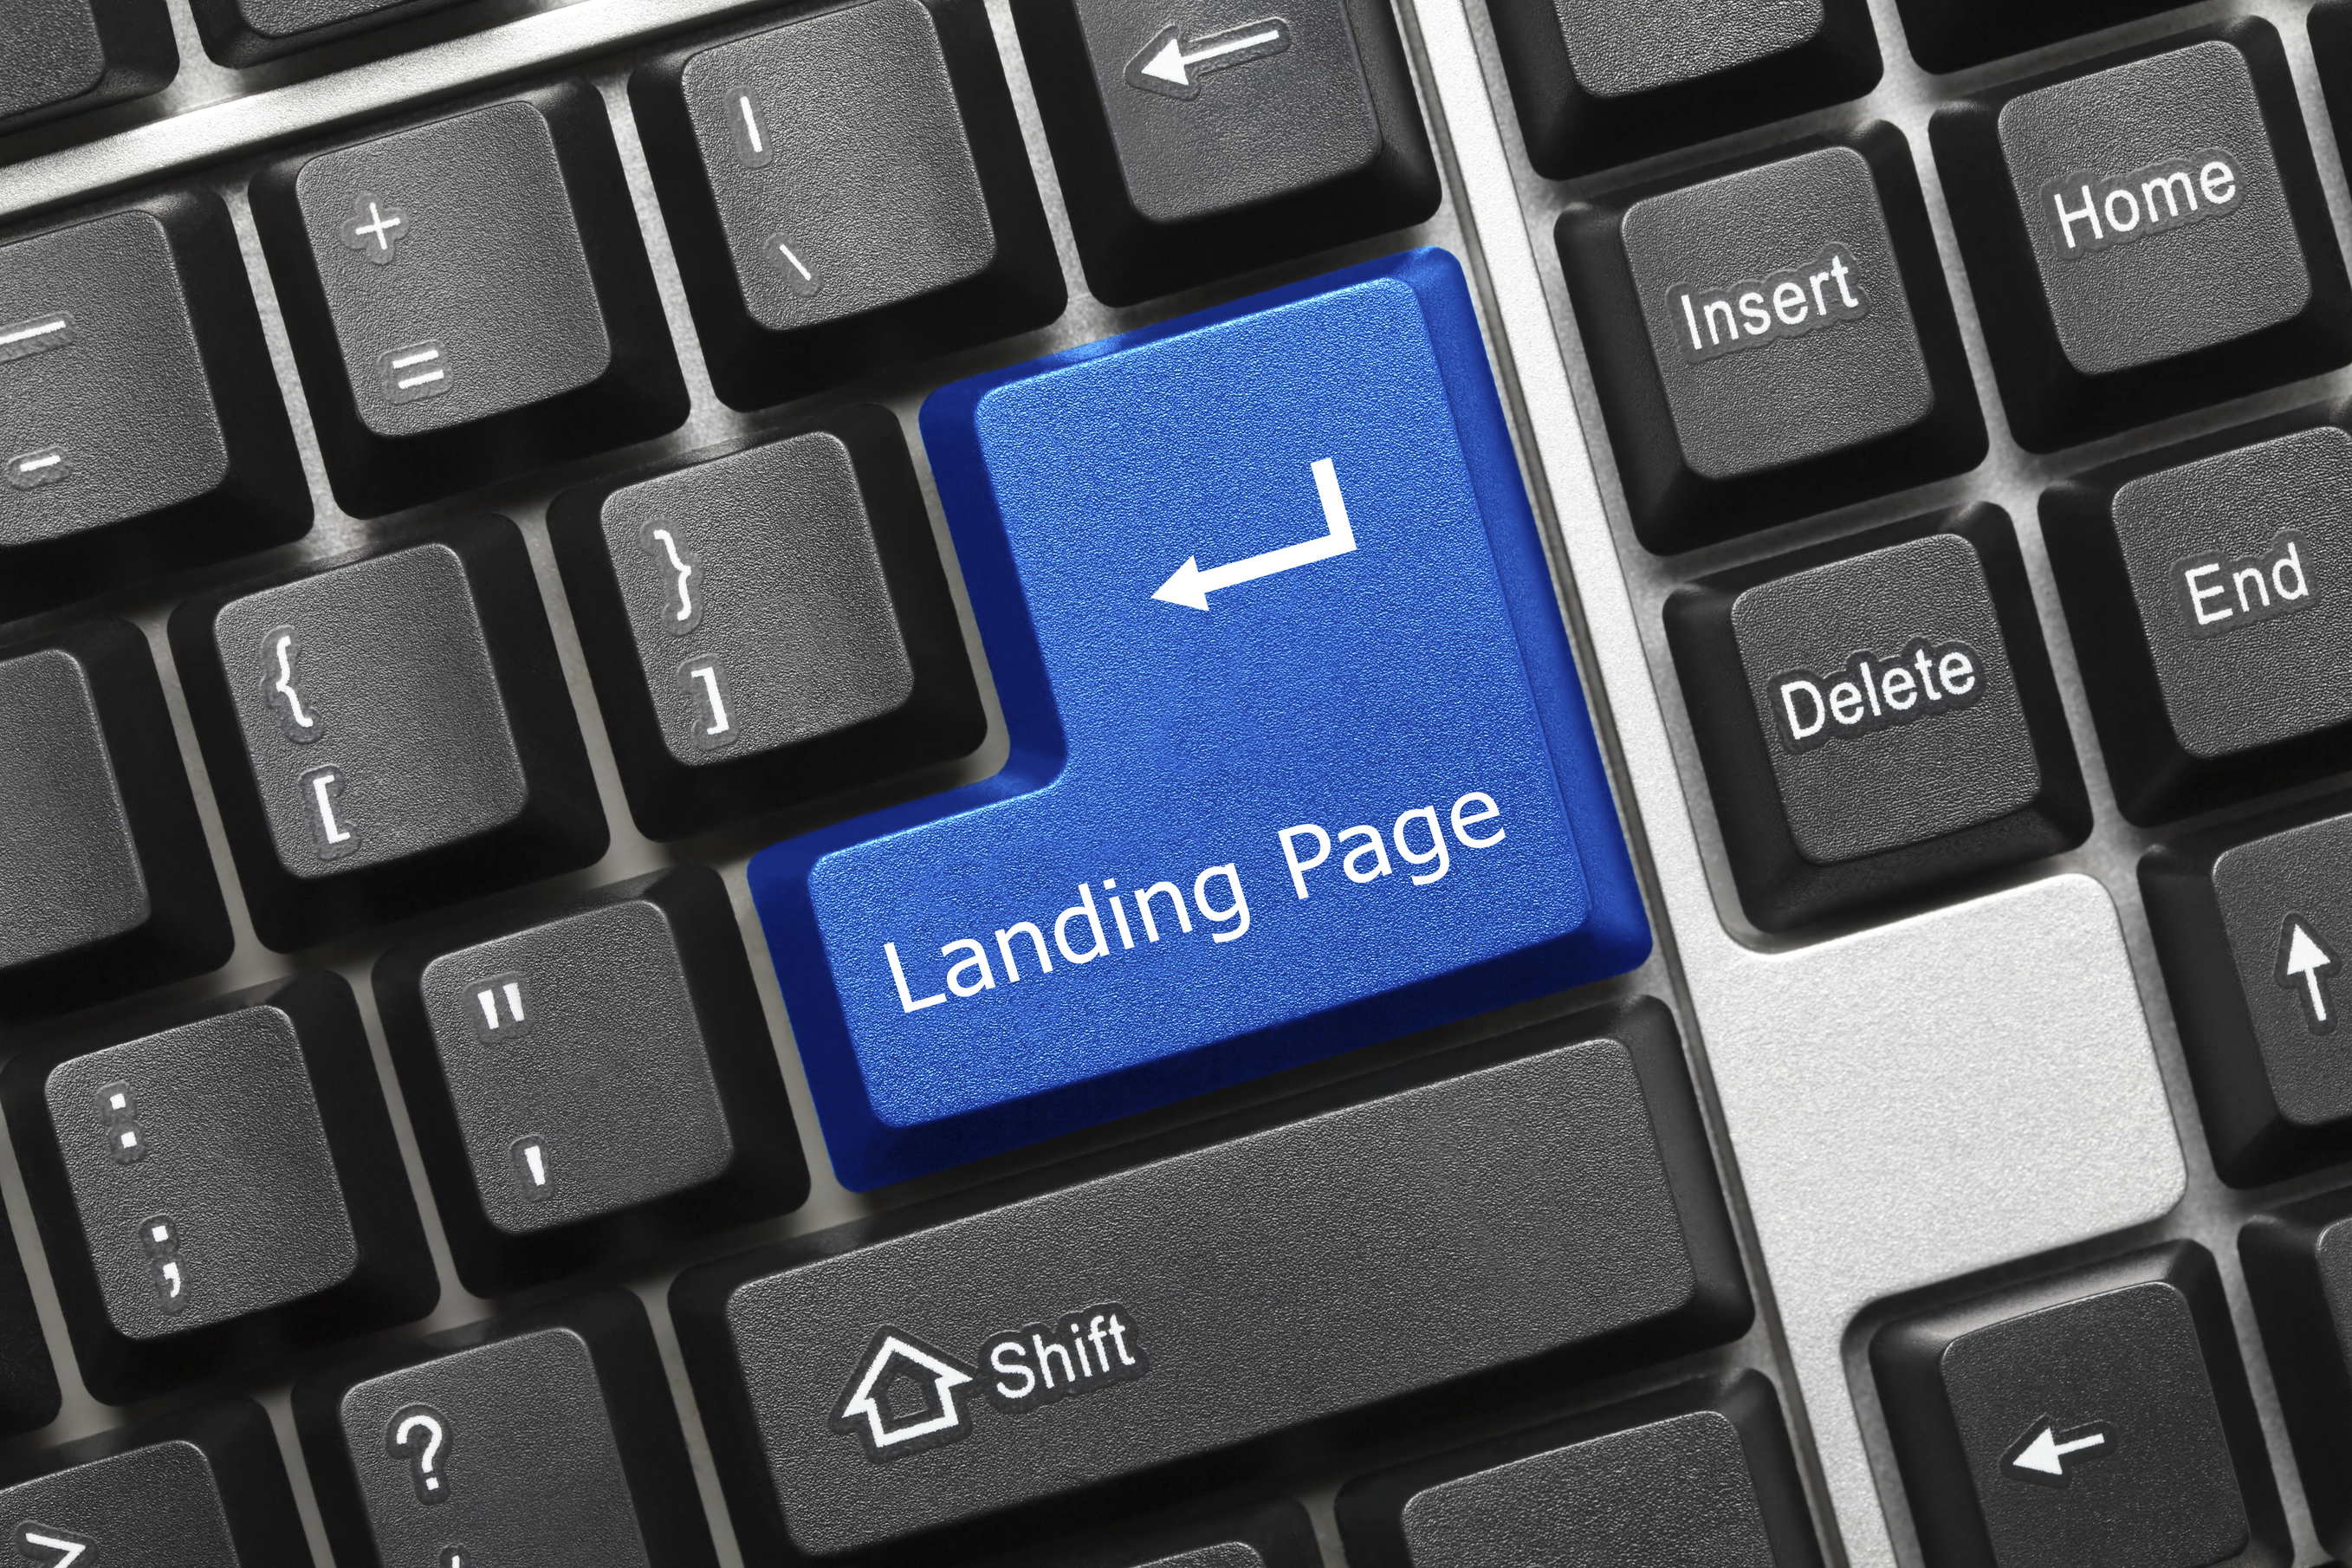 Maximize Online Conversions with Landing Pages (Part 1)